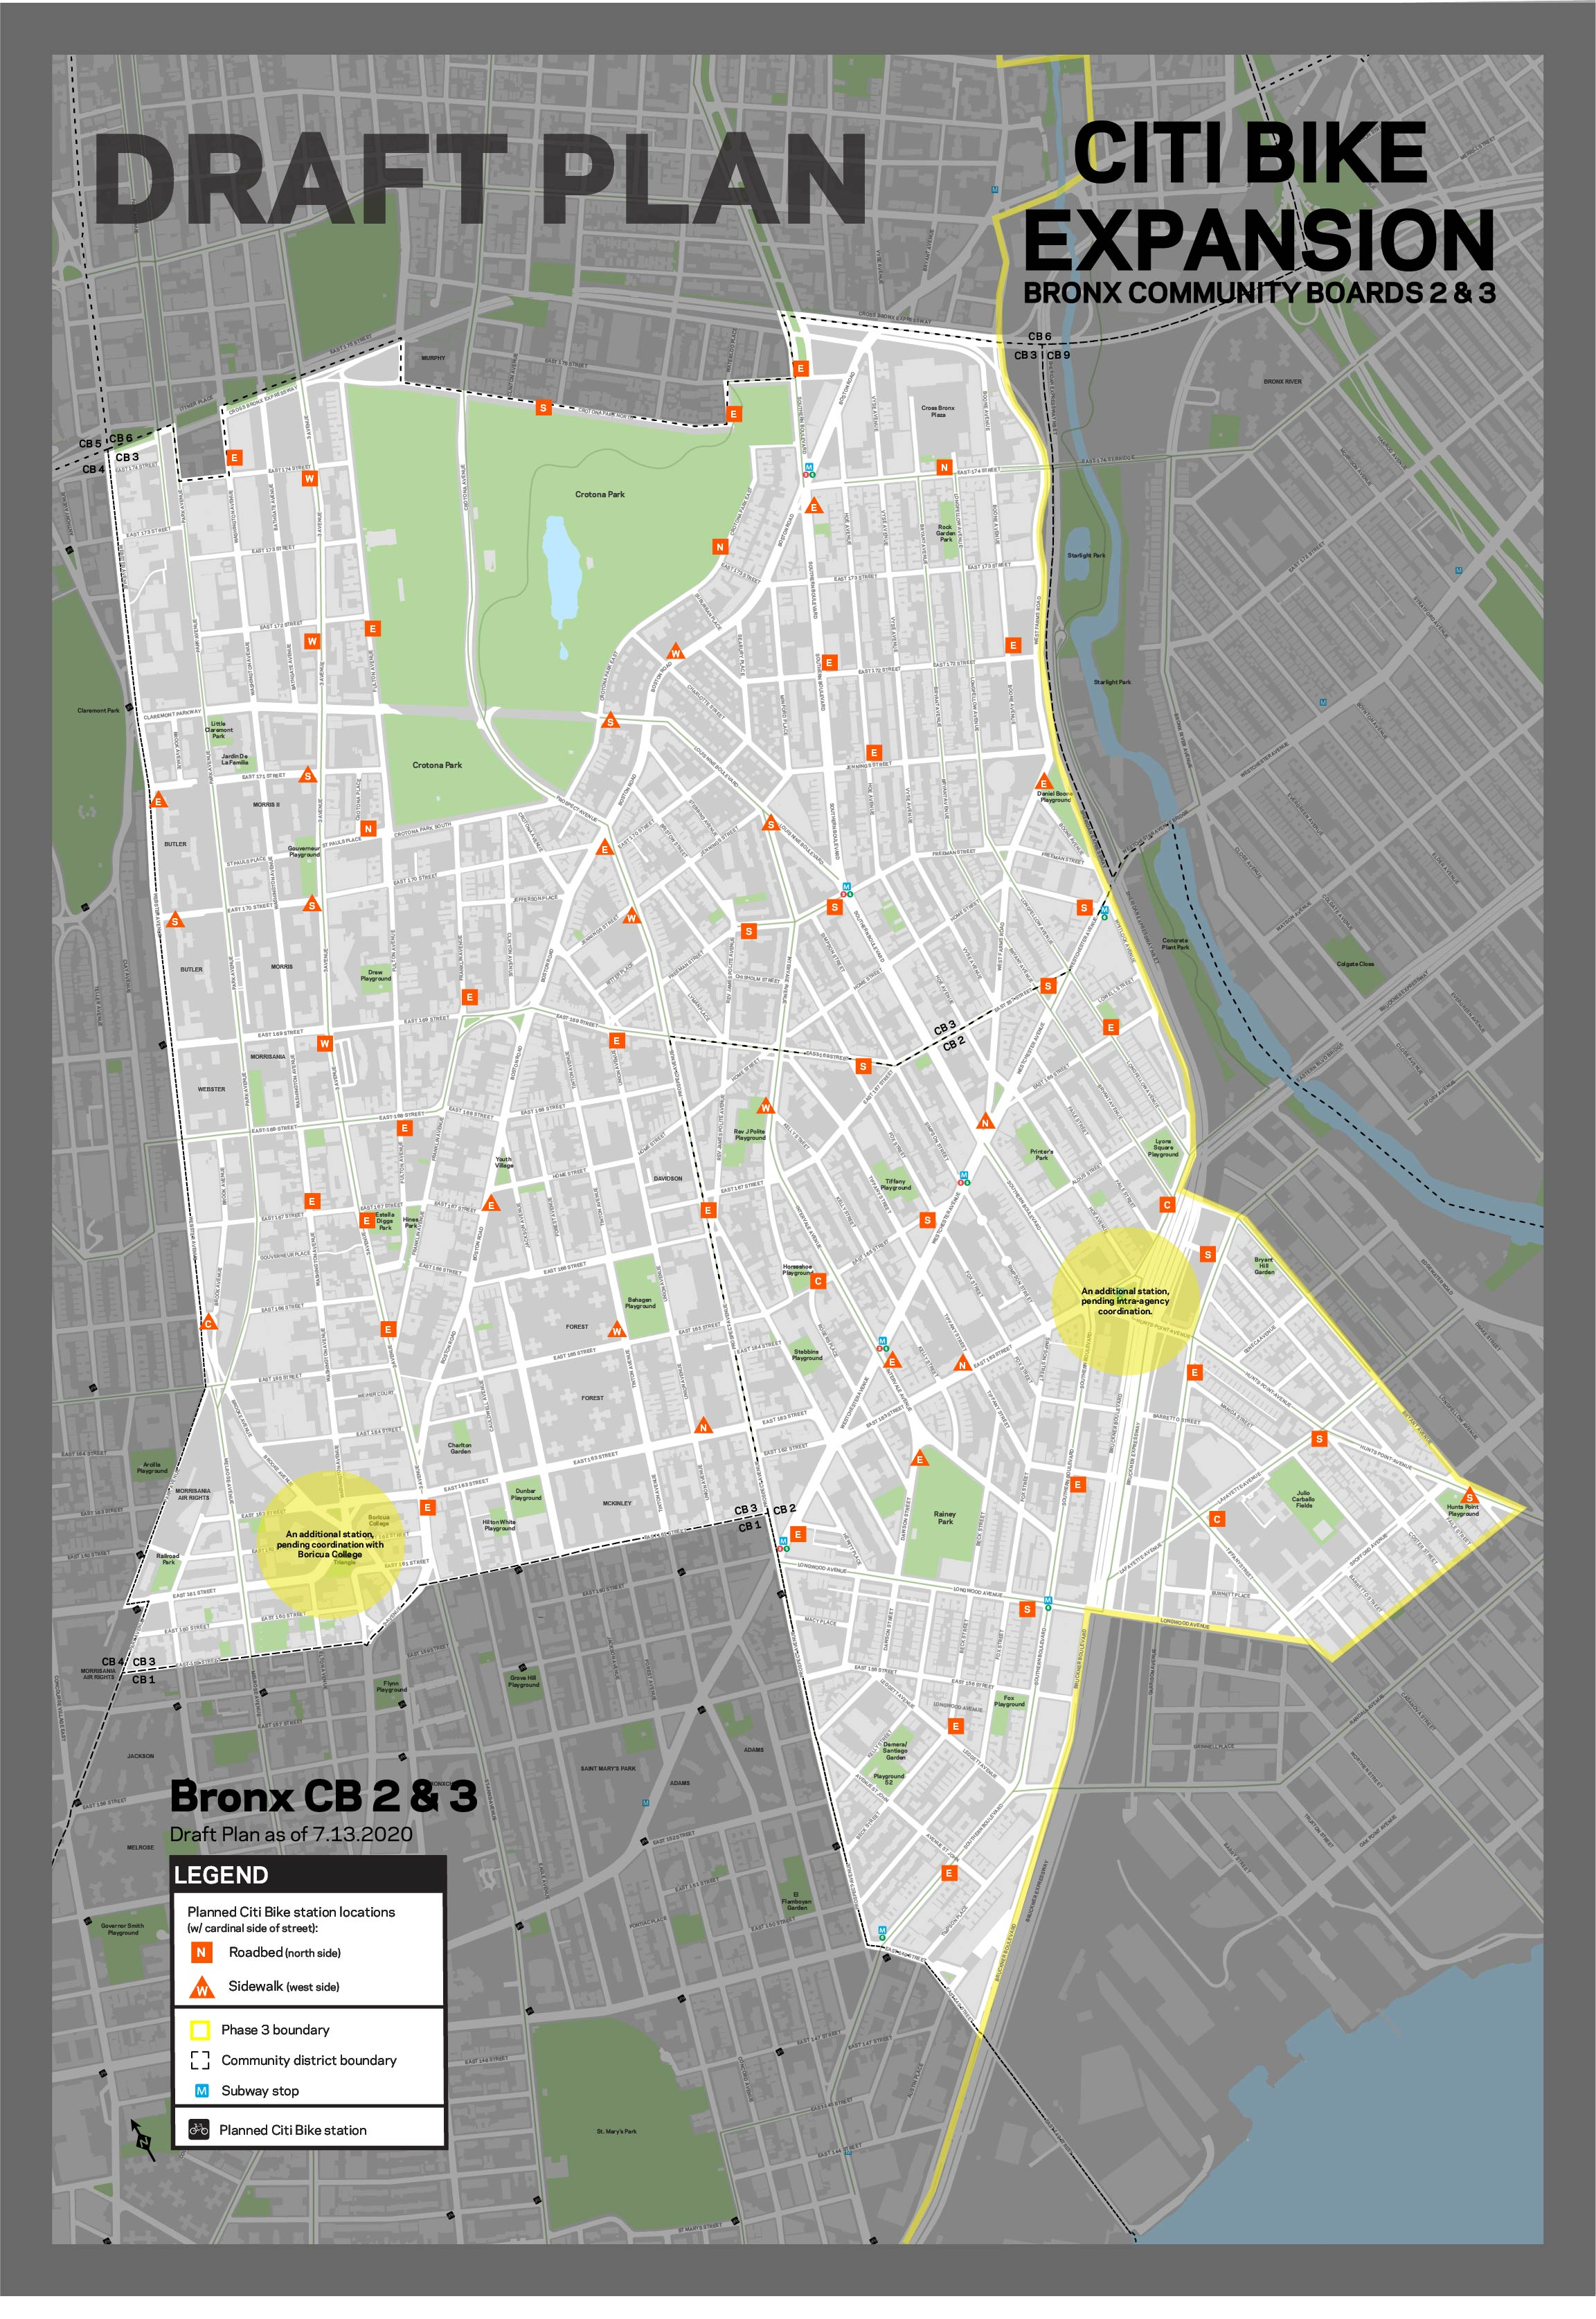 The draft plan for Bronx's Community Boards 2 & 3.